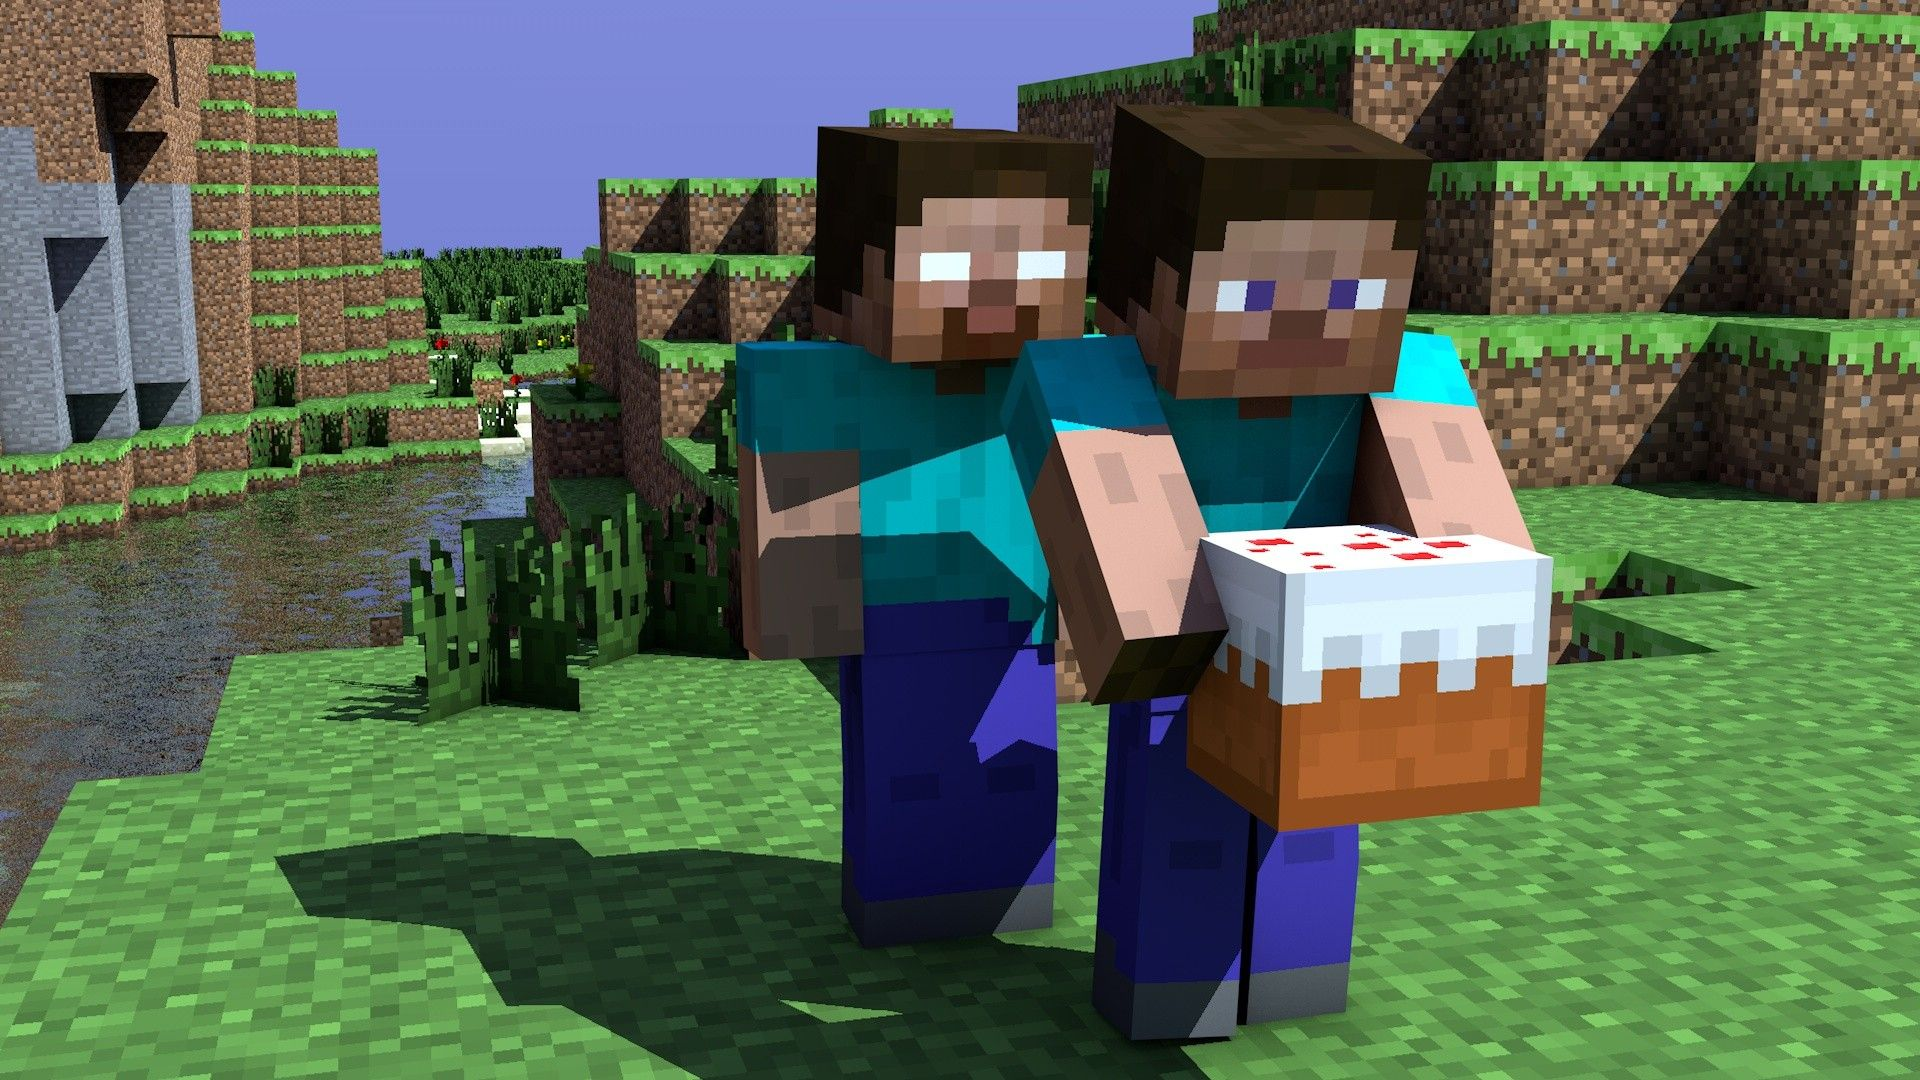 Minecraft Skins Steve Hd Wallpaper Beraplan Minecraft